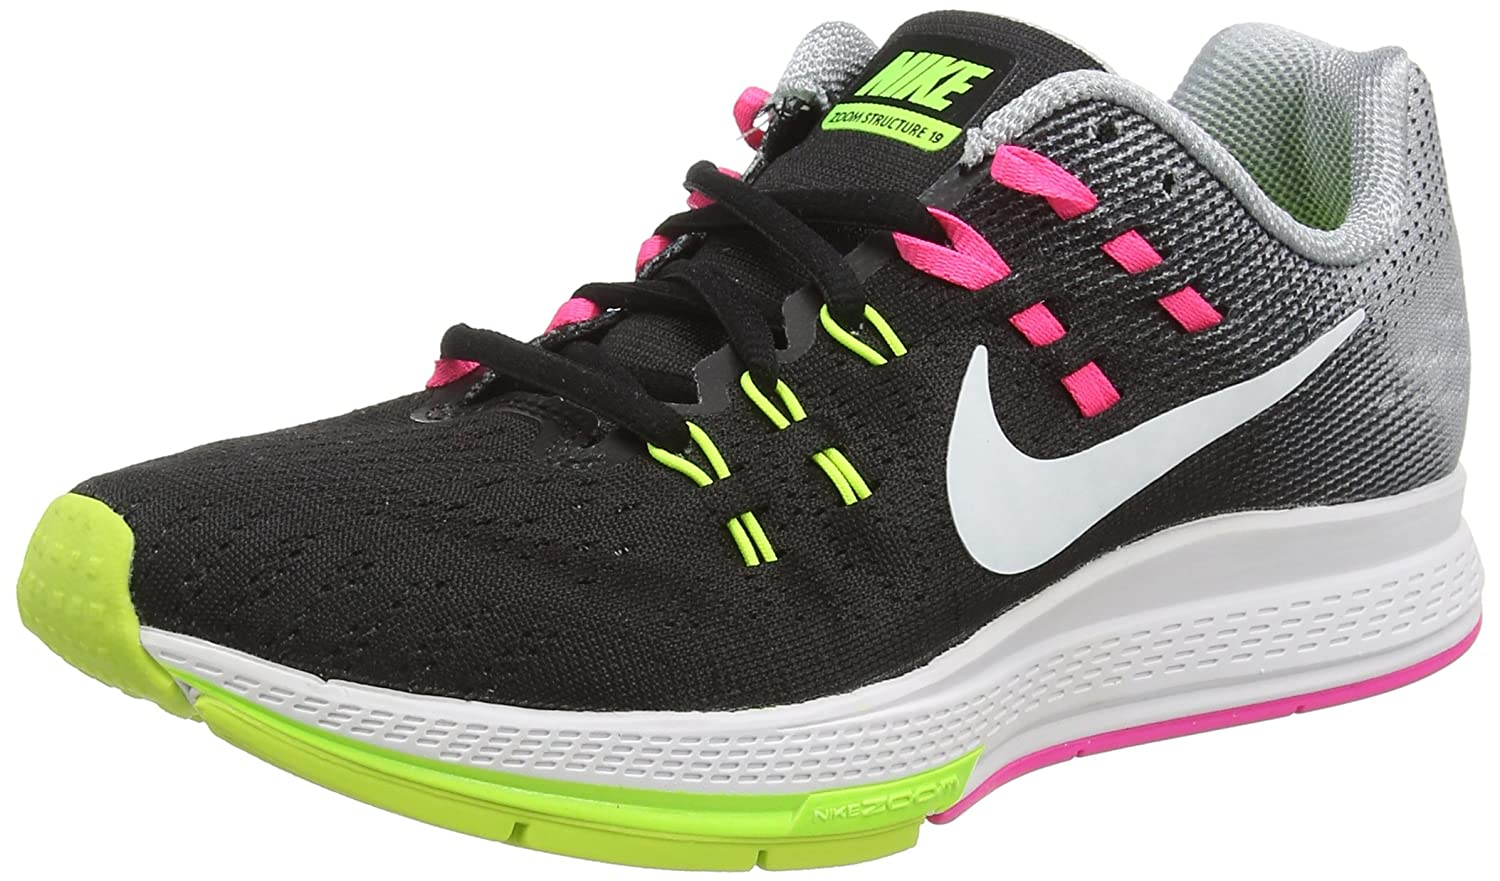 NIKE Mens Air Zoom Structure 19 Running Shoes B019DT9SCO 6 B(M) US|BLACK/WHITE-PINK BLAST-DK PURPLE DUST